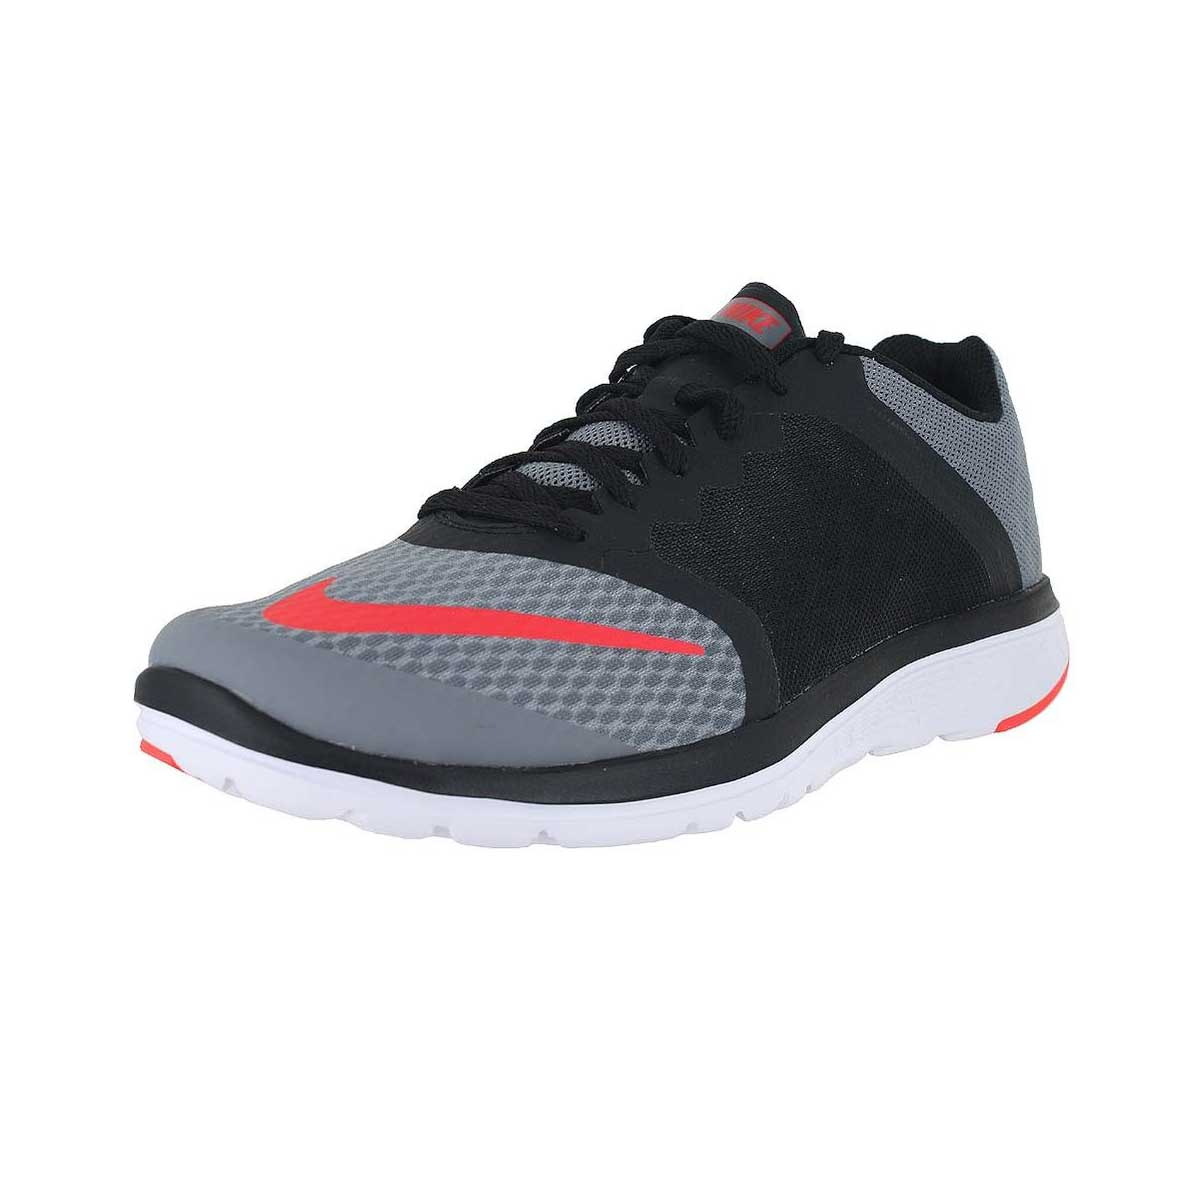 best authentic 2a0ff afd39 Buy Nike FS Lite 3 Running Shoes (Black Grey Red) Online India